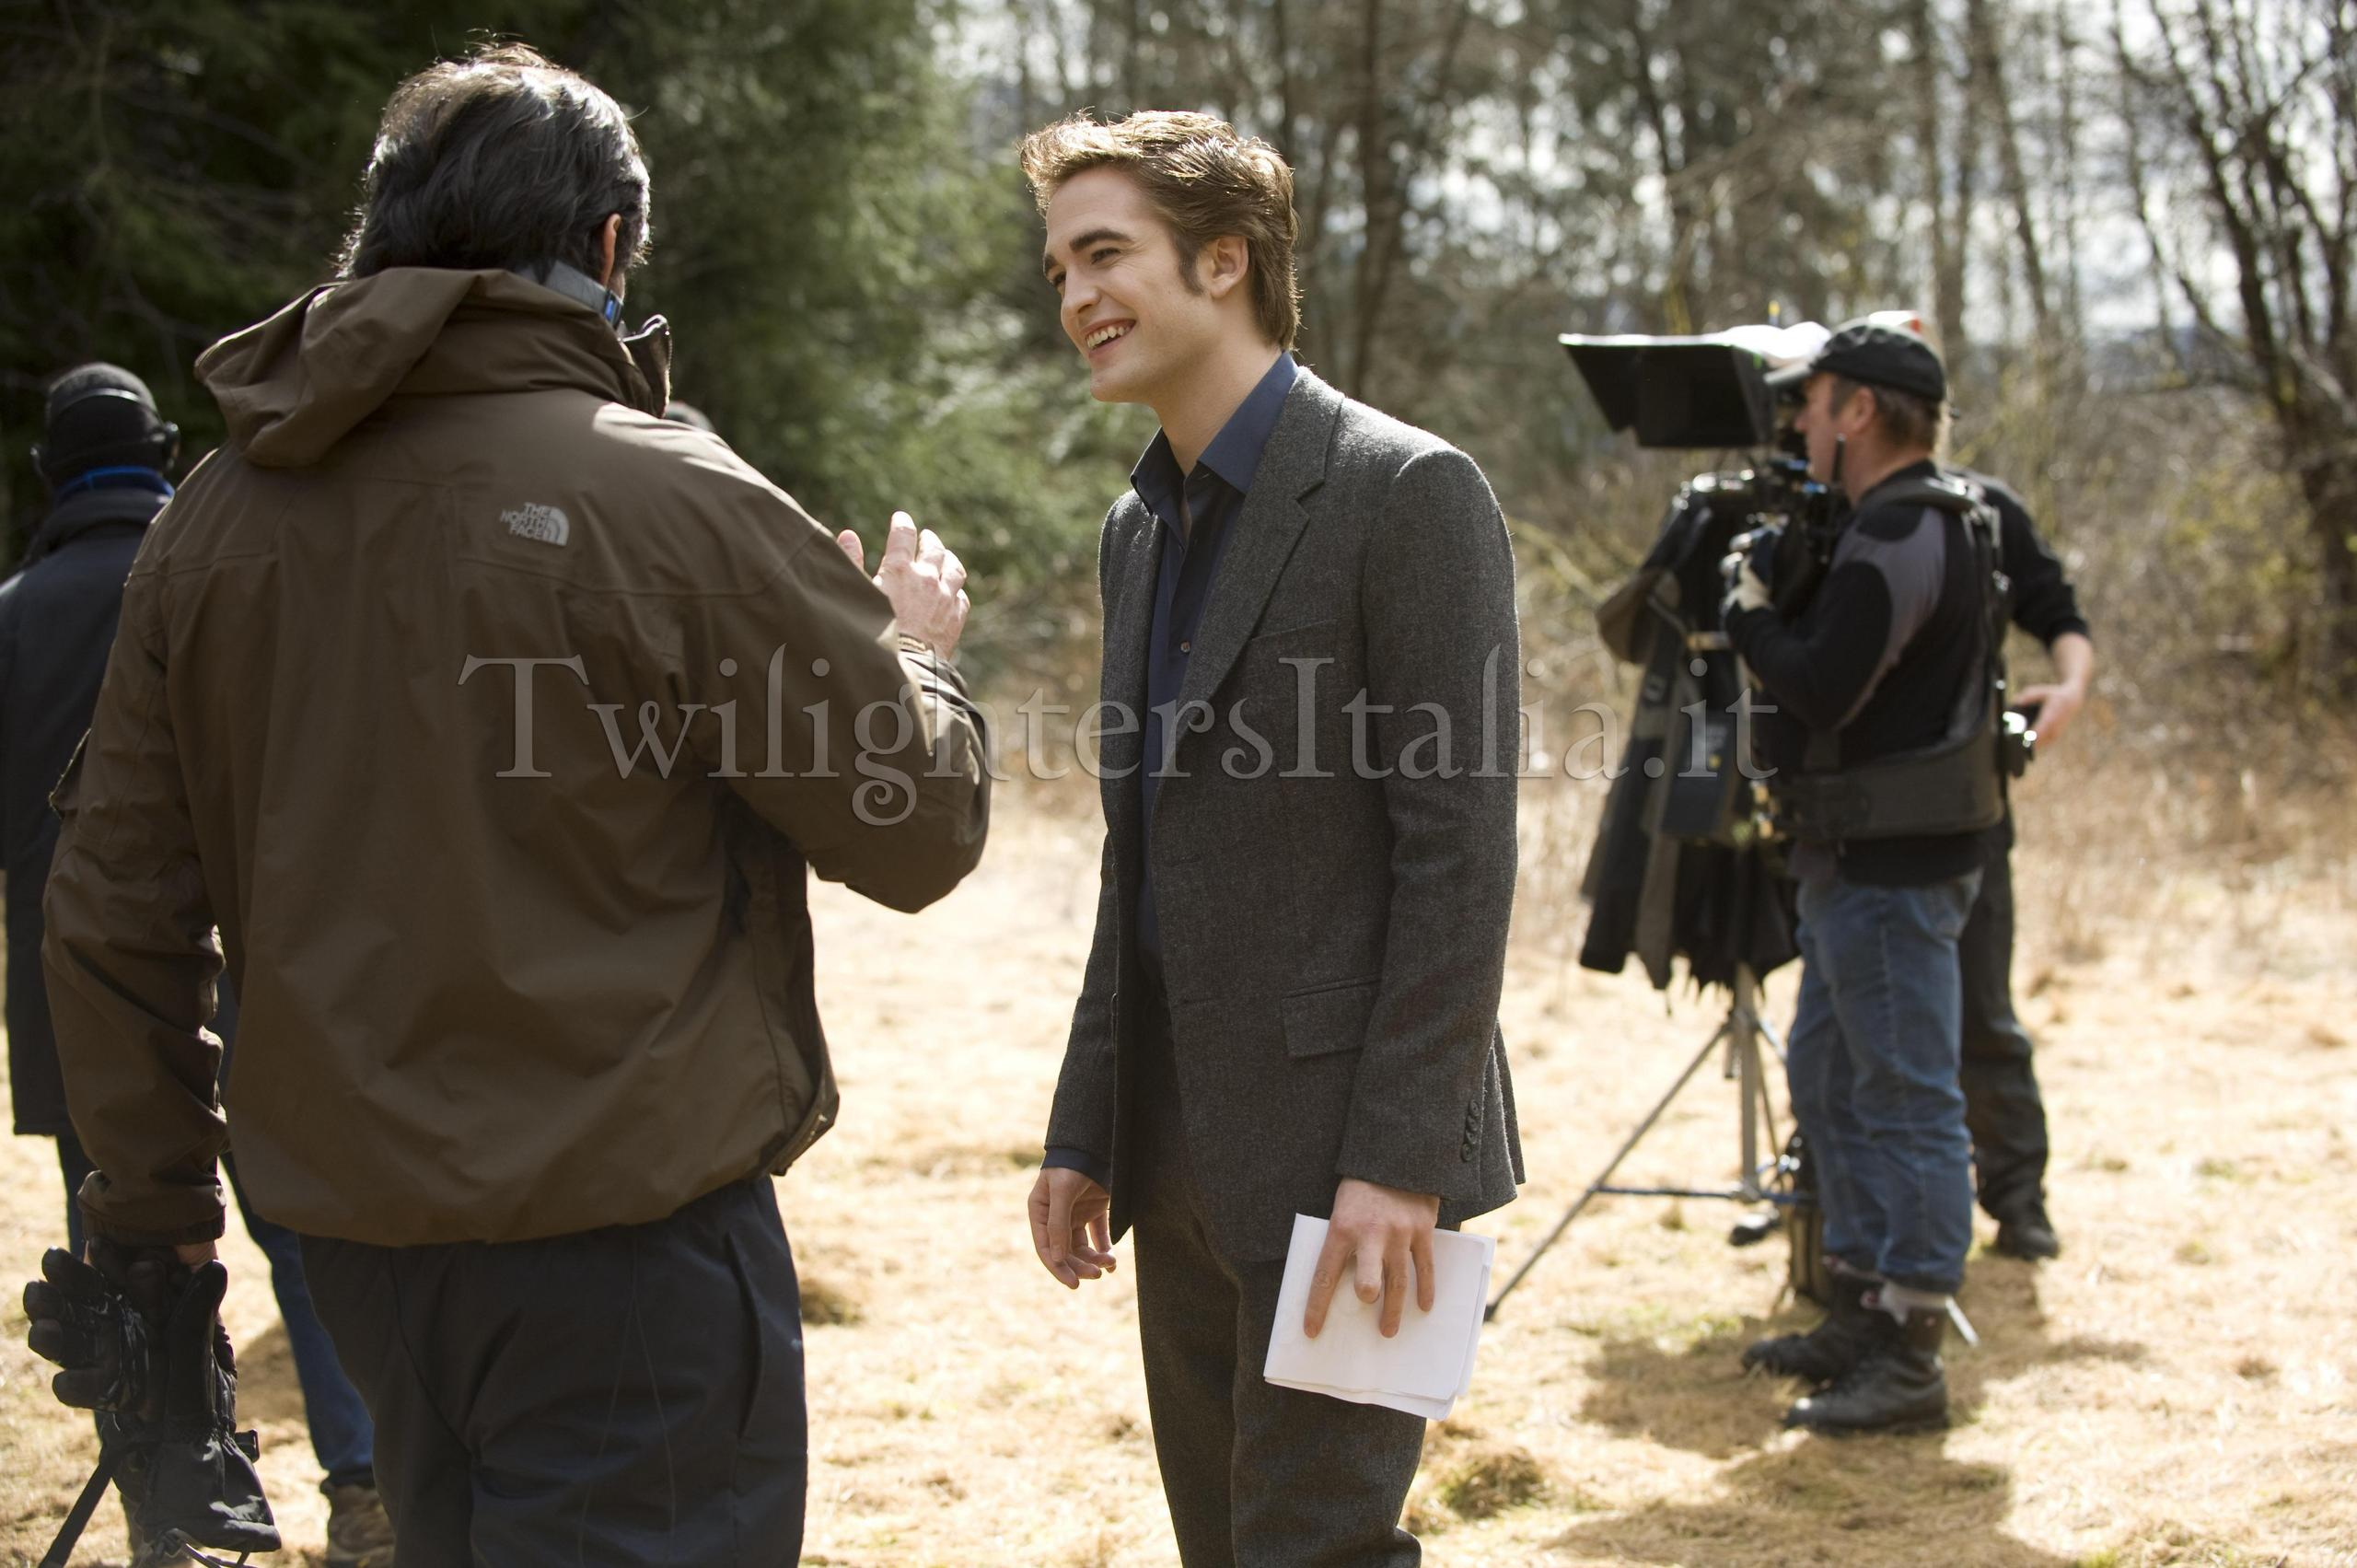 http://images2.fanpop.com/image/photos/8900000/Robert-Pattinson-New-Moon-behind-the-scenes-HQ-still-twilight-series-8931741-2560-1703.jpg